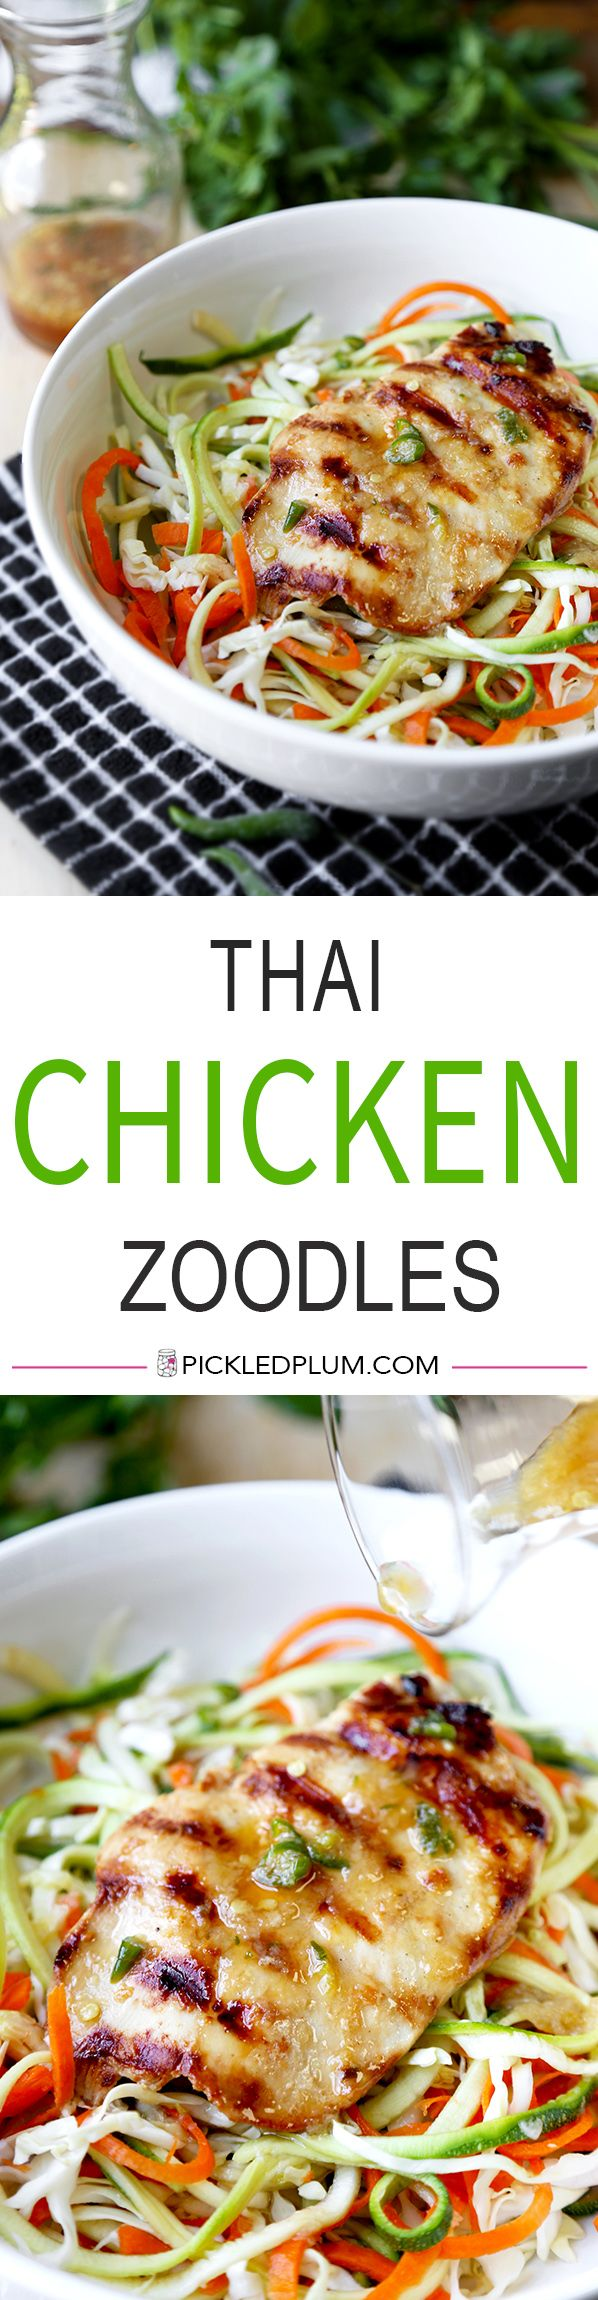 Thai Chicken Zoodles - A smoky, grilled Thai Chicken Zoodles Recipe that has lean protein, spiralized veggies and loads of flavor! This light, healthy recipe is ready in 23 minutes from start to finish. Recipe, healthy, salad, zoodles, gluten free, Asian chicken salad, dinner, lunch | pickledplum.com